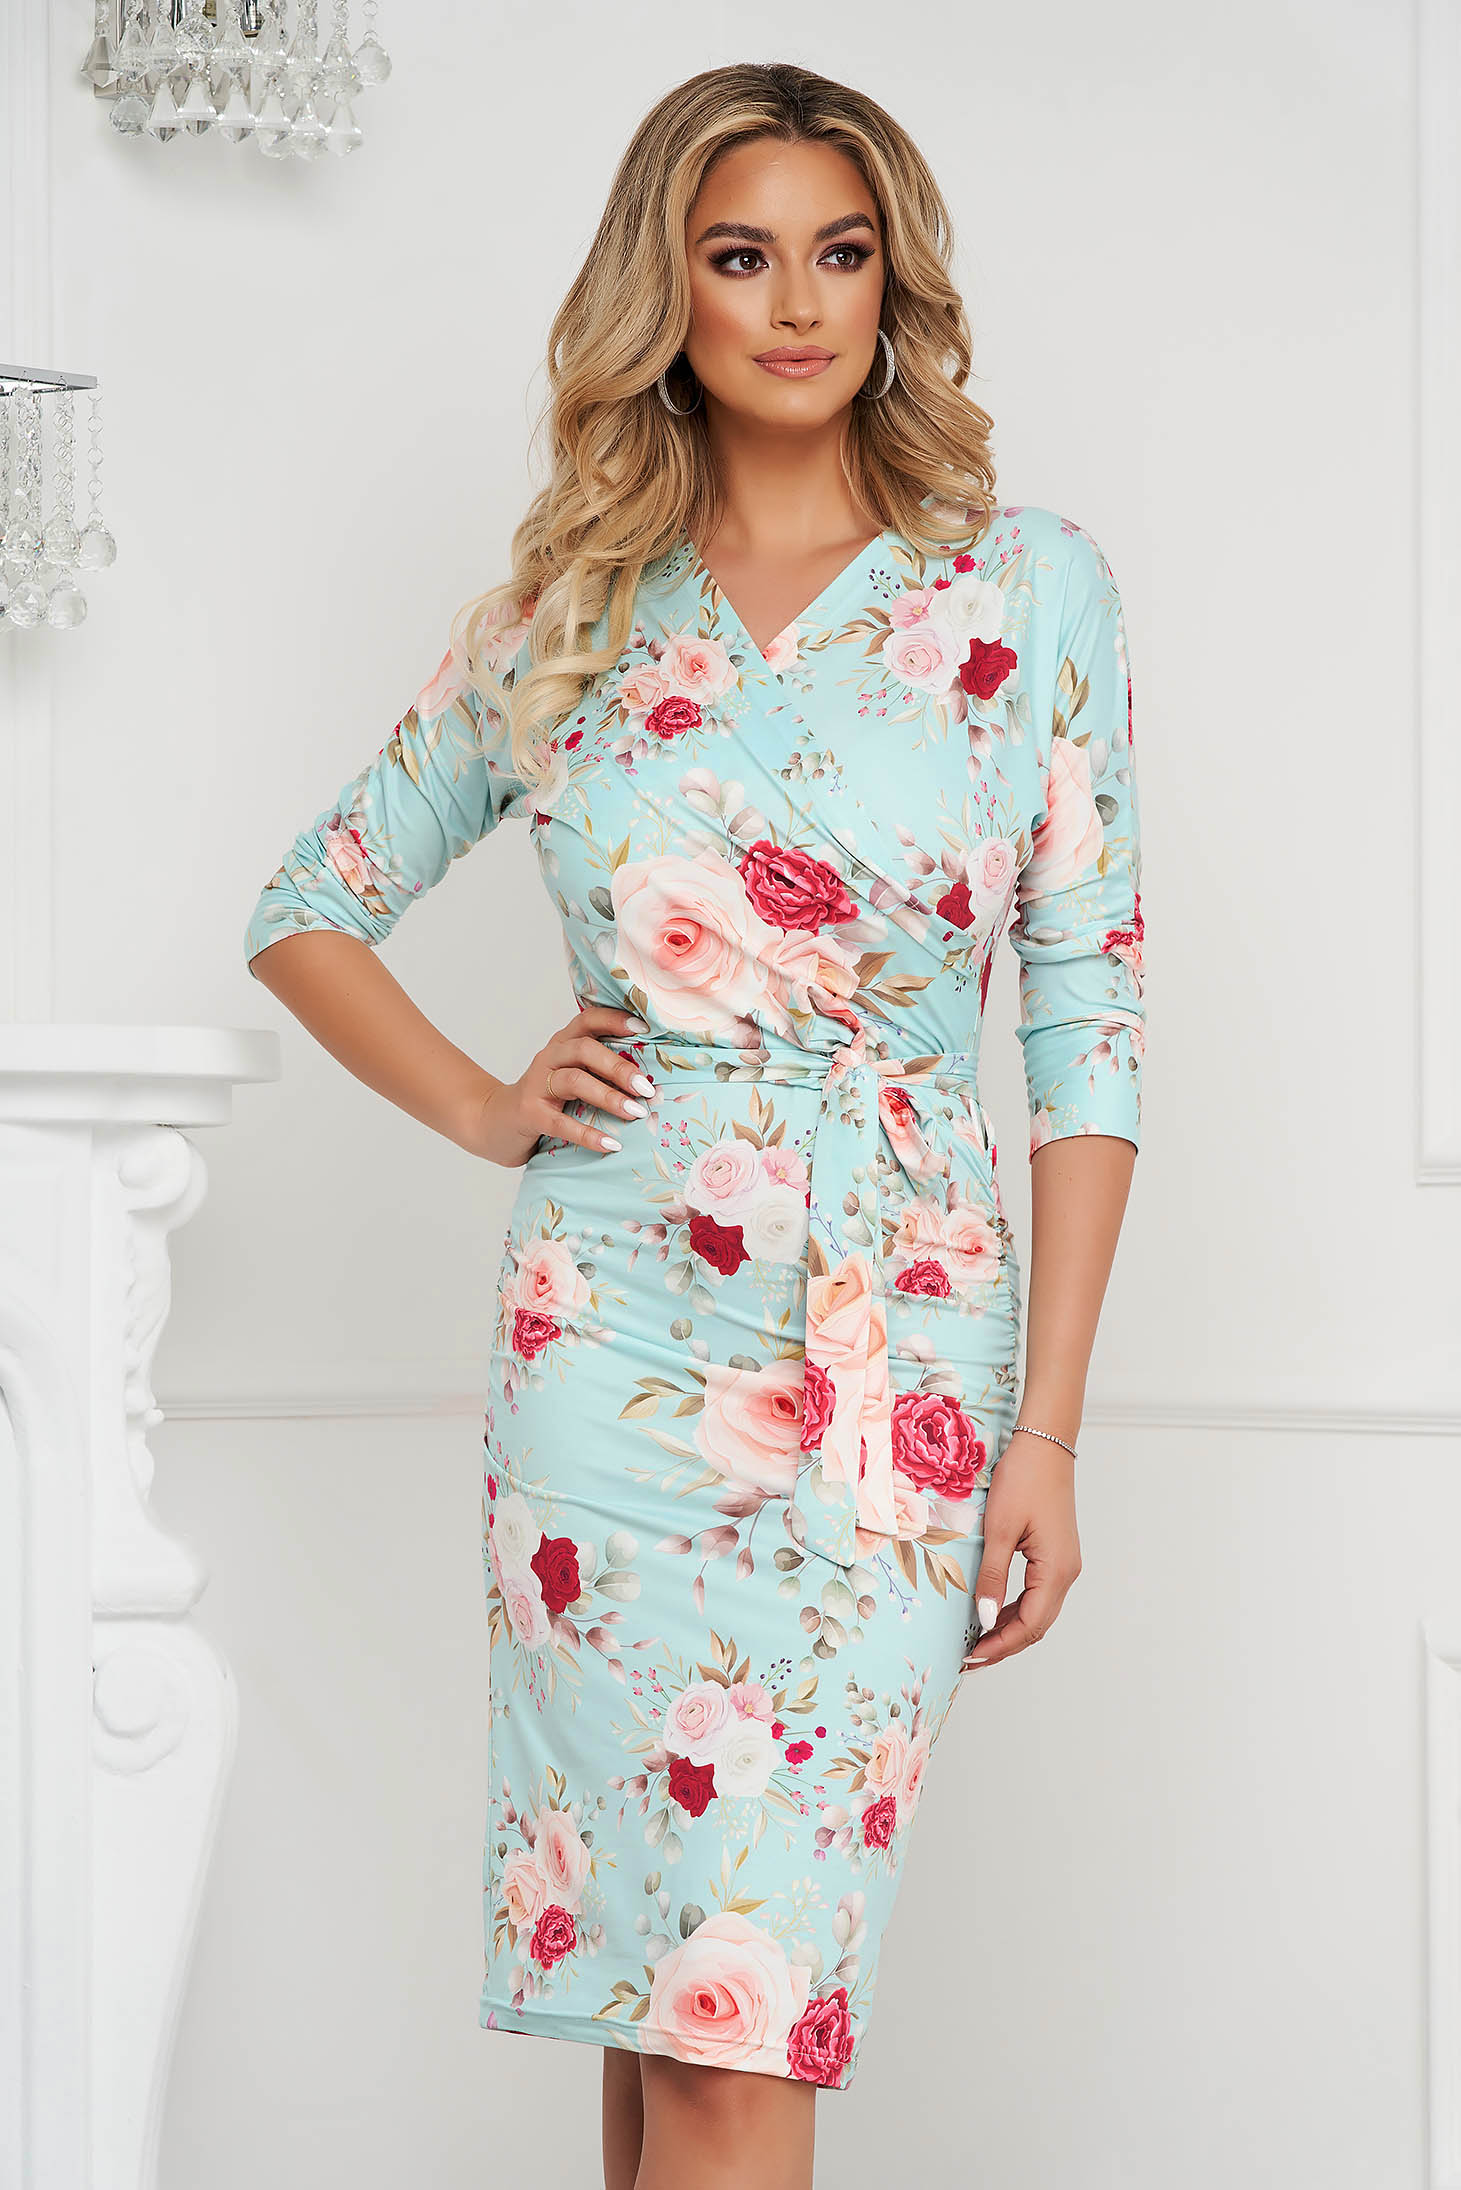 StarShinerS dress office midi pencil from elastic fabric wrap over front with floral print